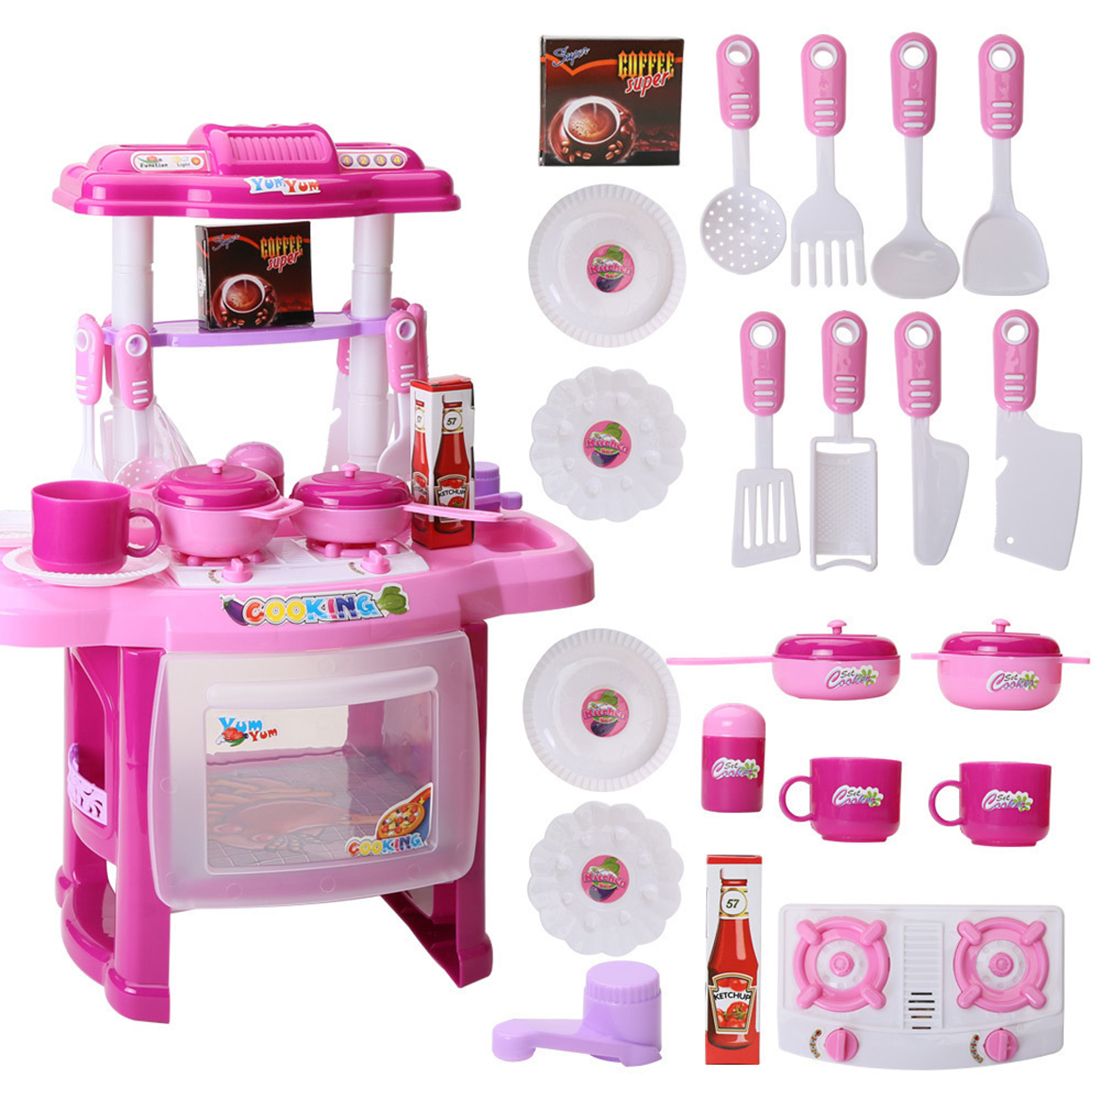 23Pcs/set Children Pretend Play Kitchen Table Set Cookware Appliance Cooking Play Toy Kitchen With Music And Light - Pink/Red